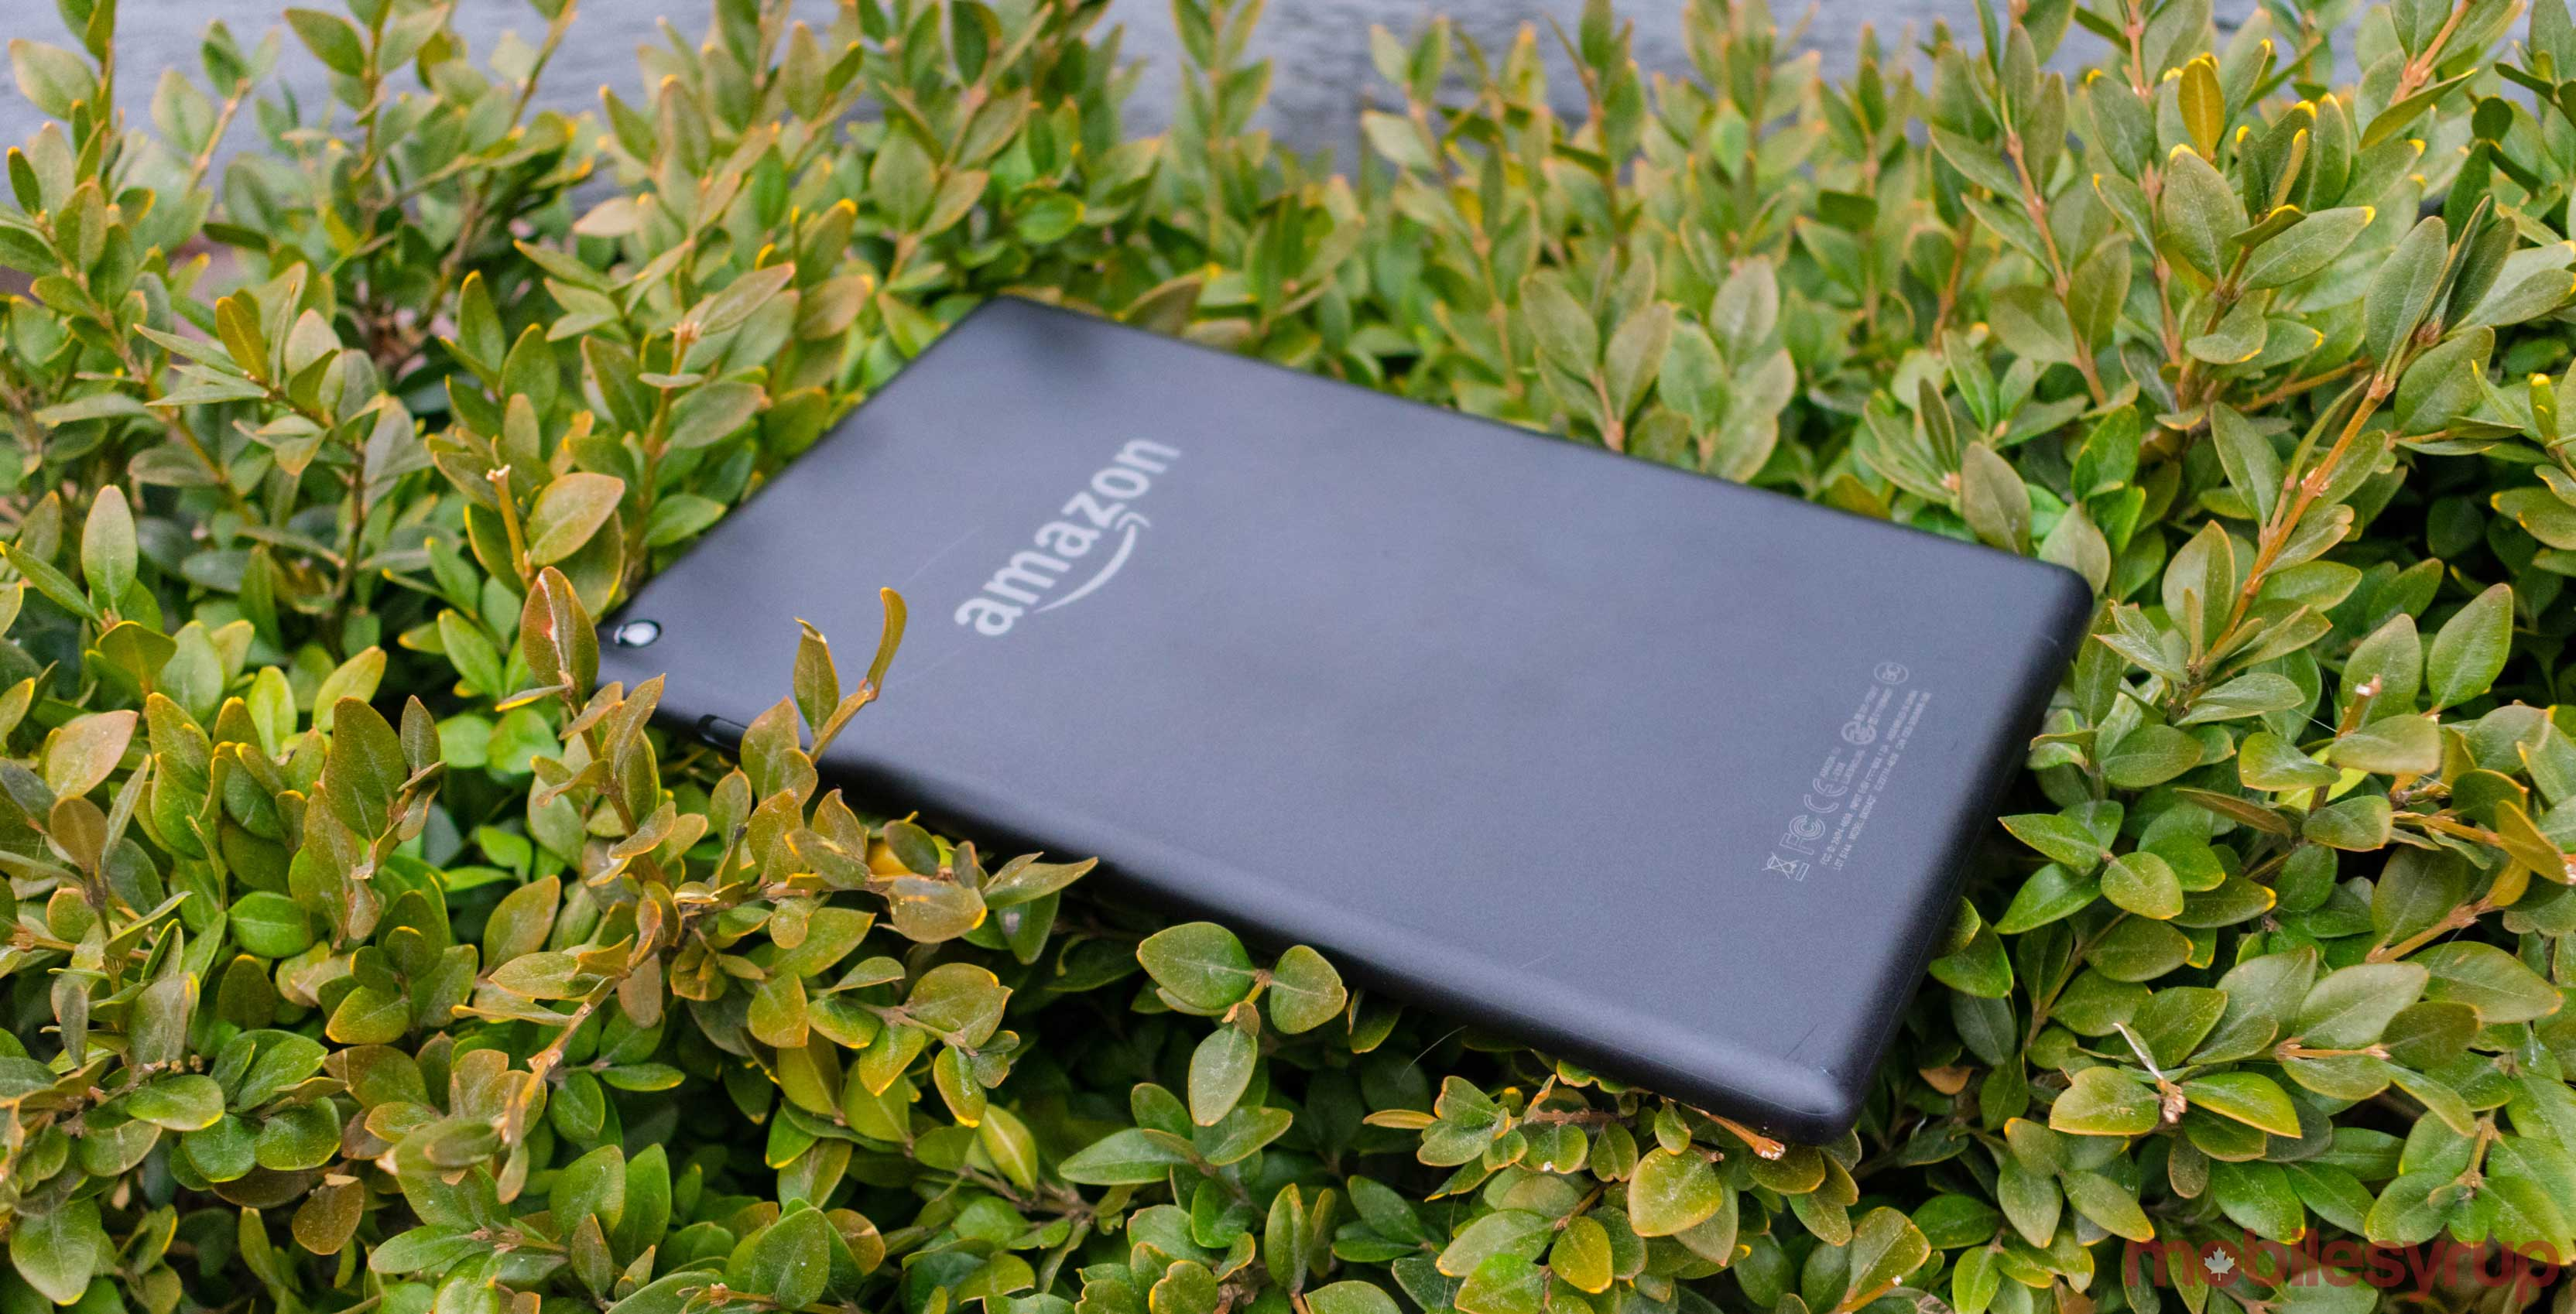 An Amazon tablet placed on a patch of grass.